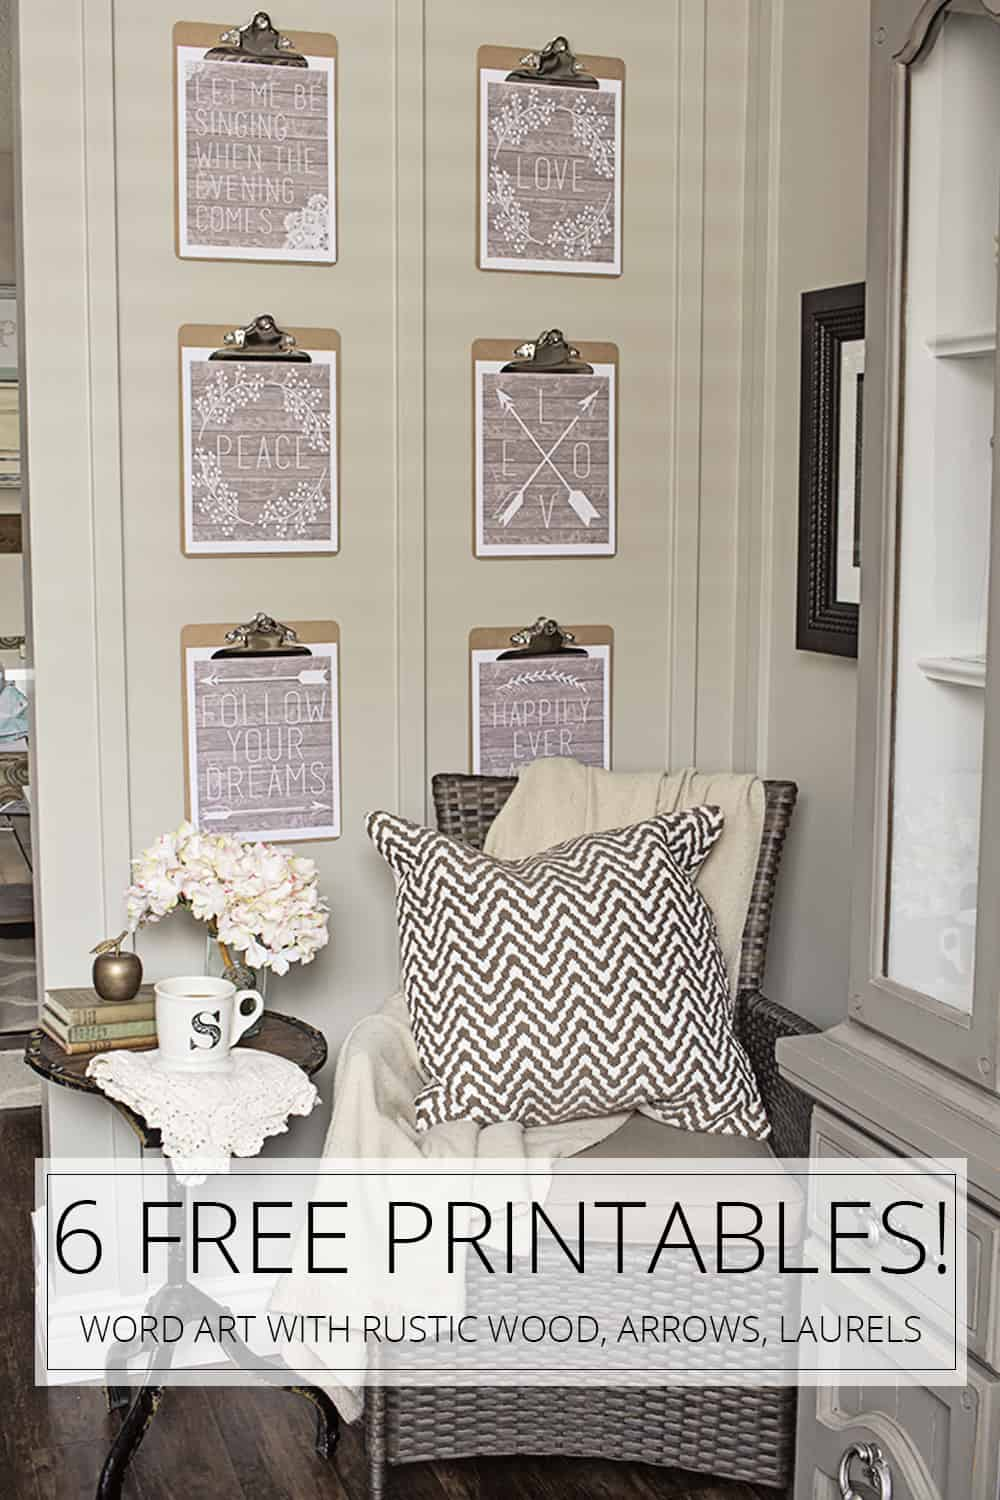 6 free printables word art with rustic wood, arrows and laurels